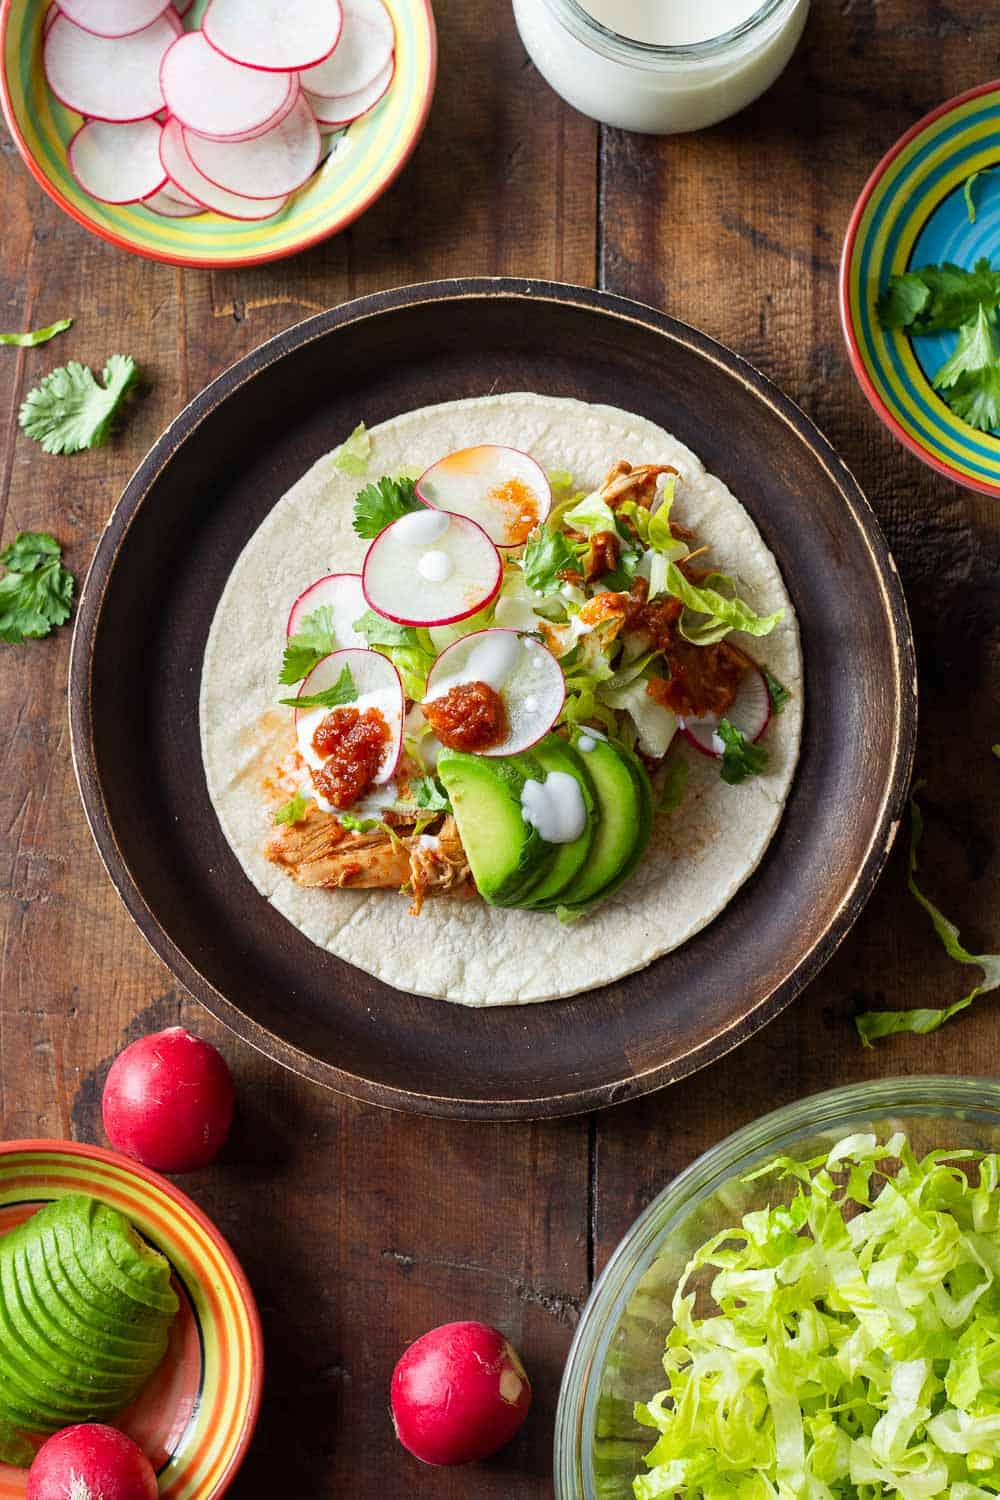 Crockpot Chicken Tacos topped with lettuce, radish, sour cream and avocado